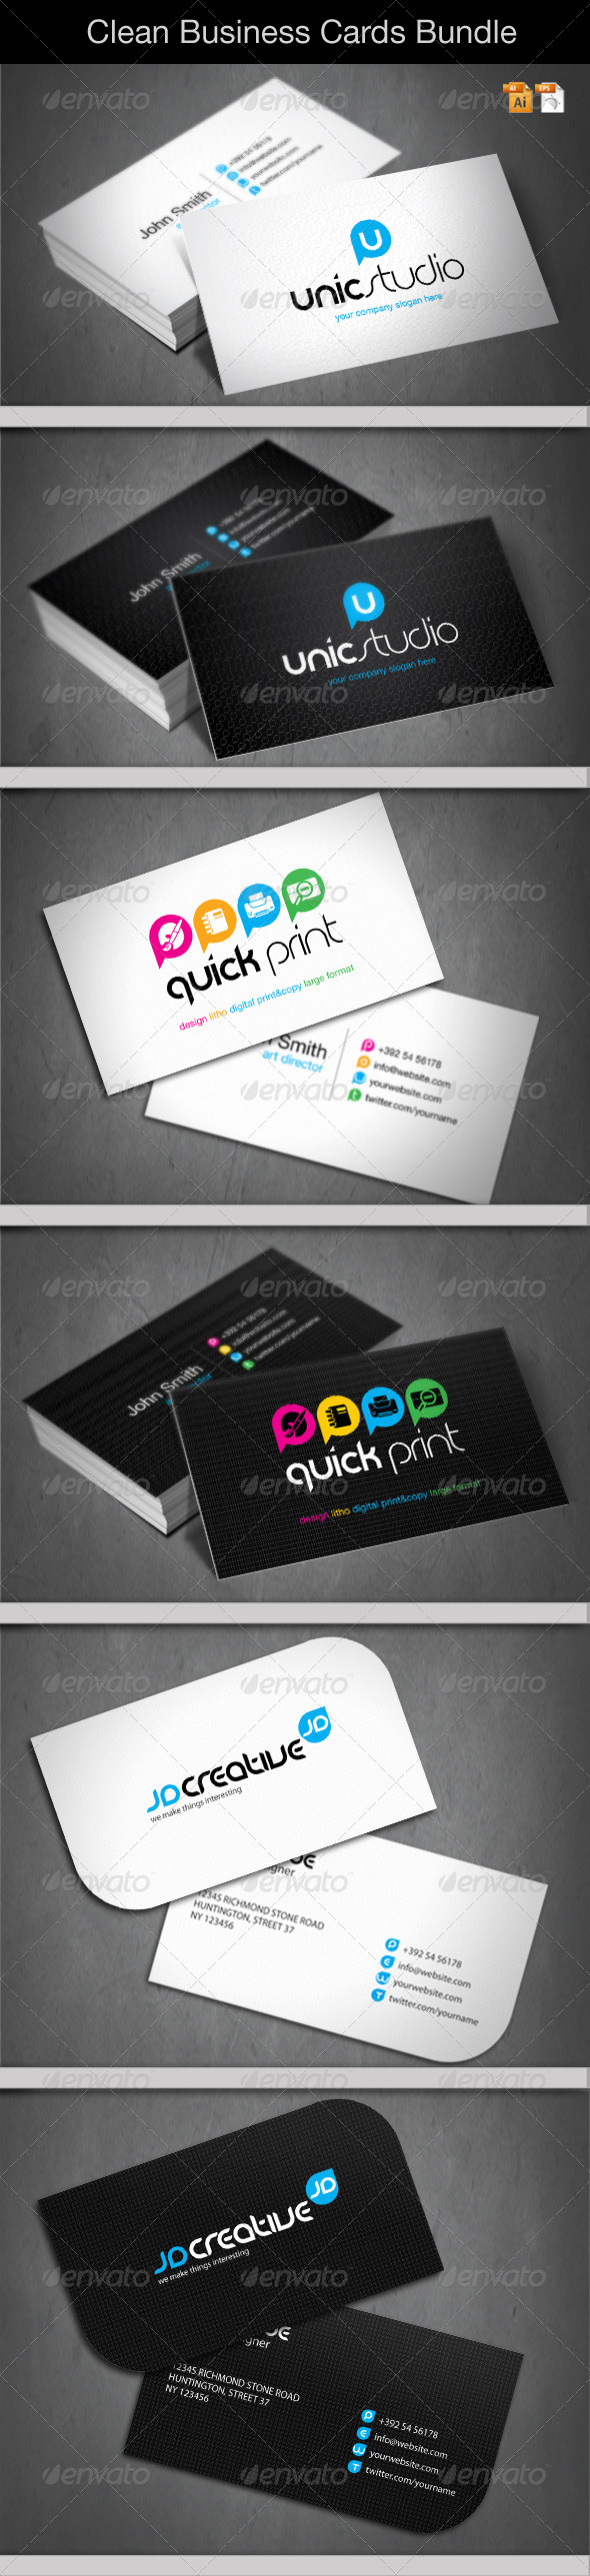 Clean Business Cards Bundle - Corporate Business Cards